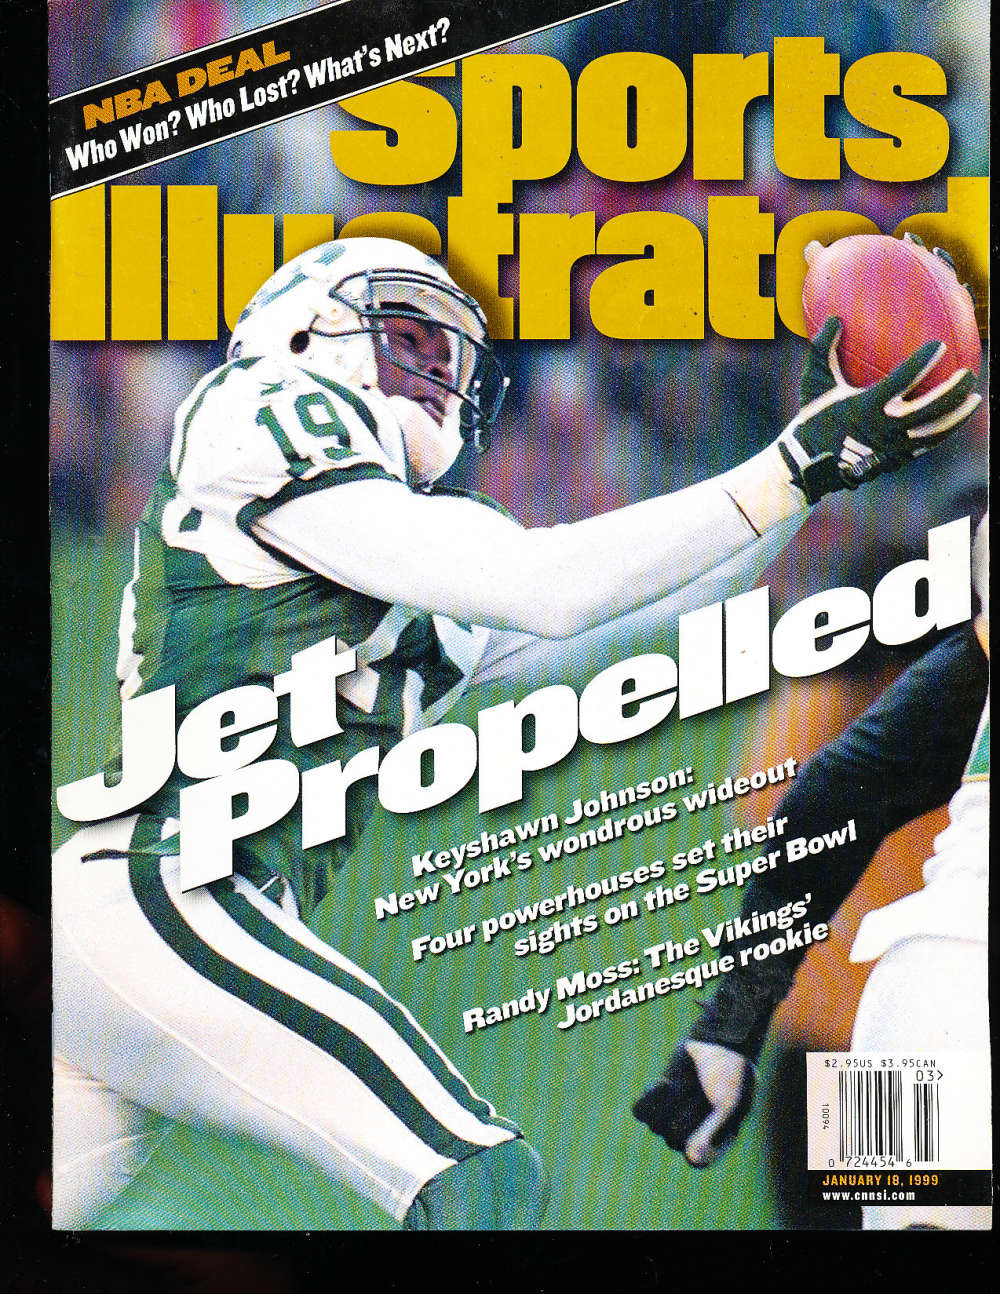 1/18 1999 Keyshawn Johnson New York Jets Sports Illustrated Newsstand No Label s4